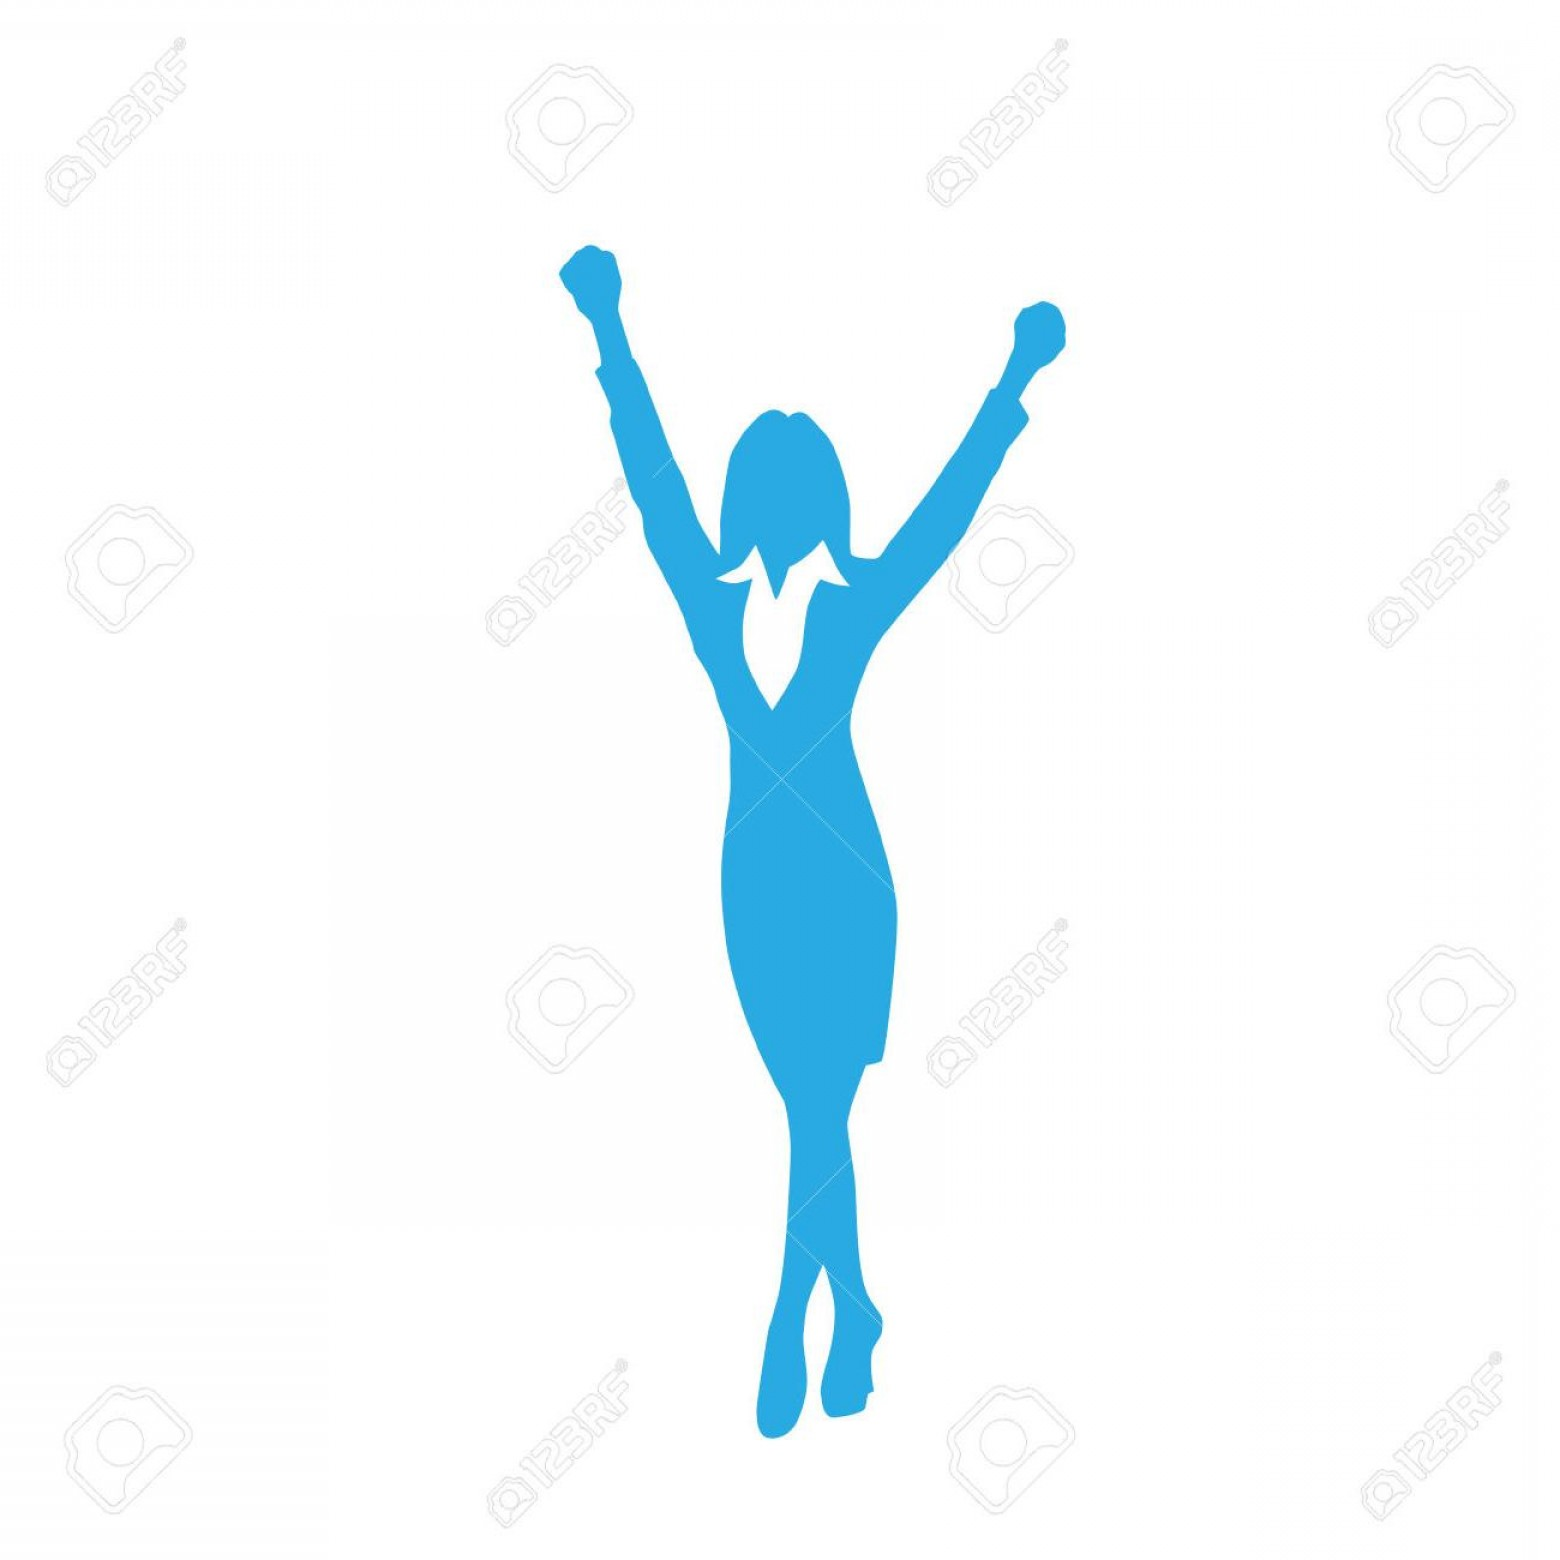 Holding Hands Up Silhouette Vector: Unique Business Woman Silhouette Excited Hold Hands Up Stock Vector Pictures